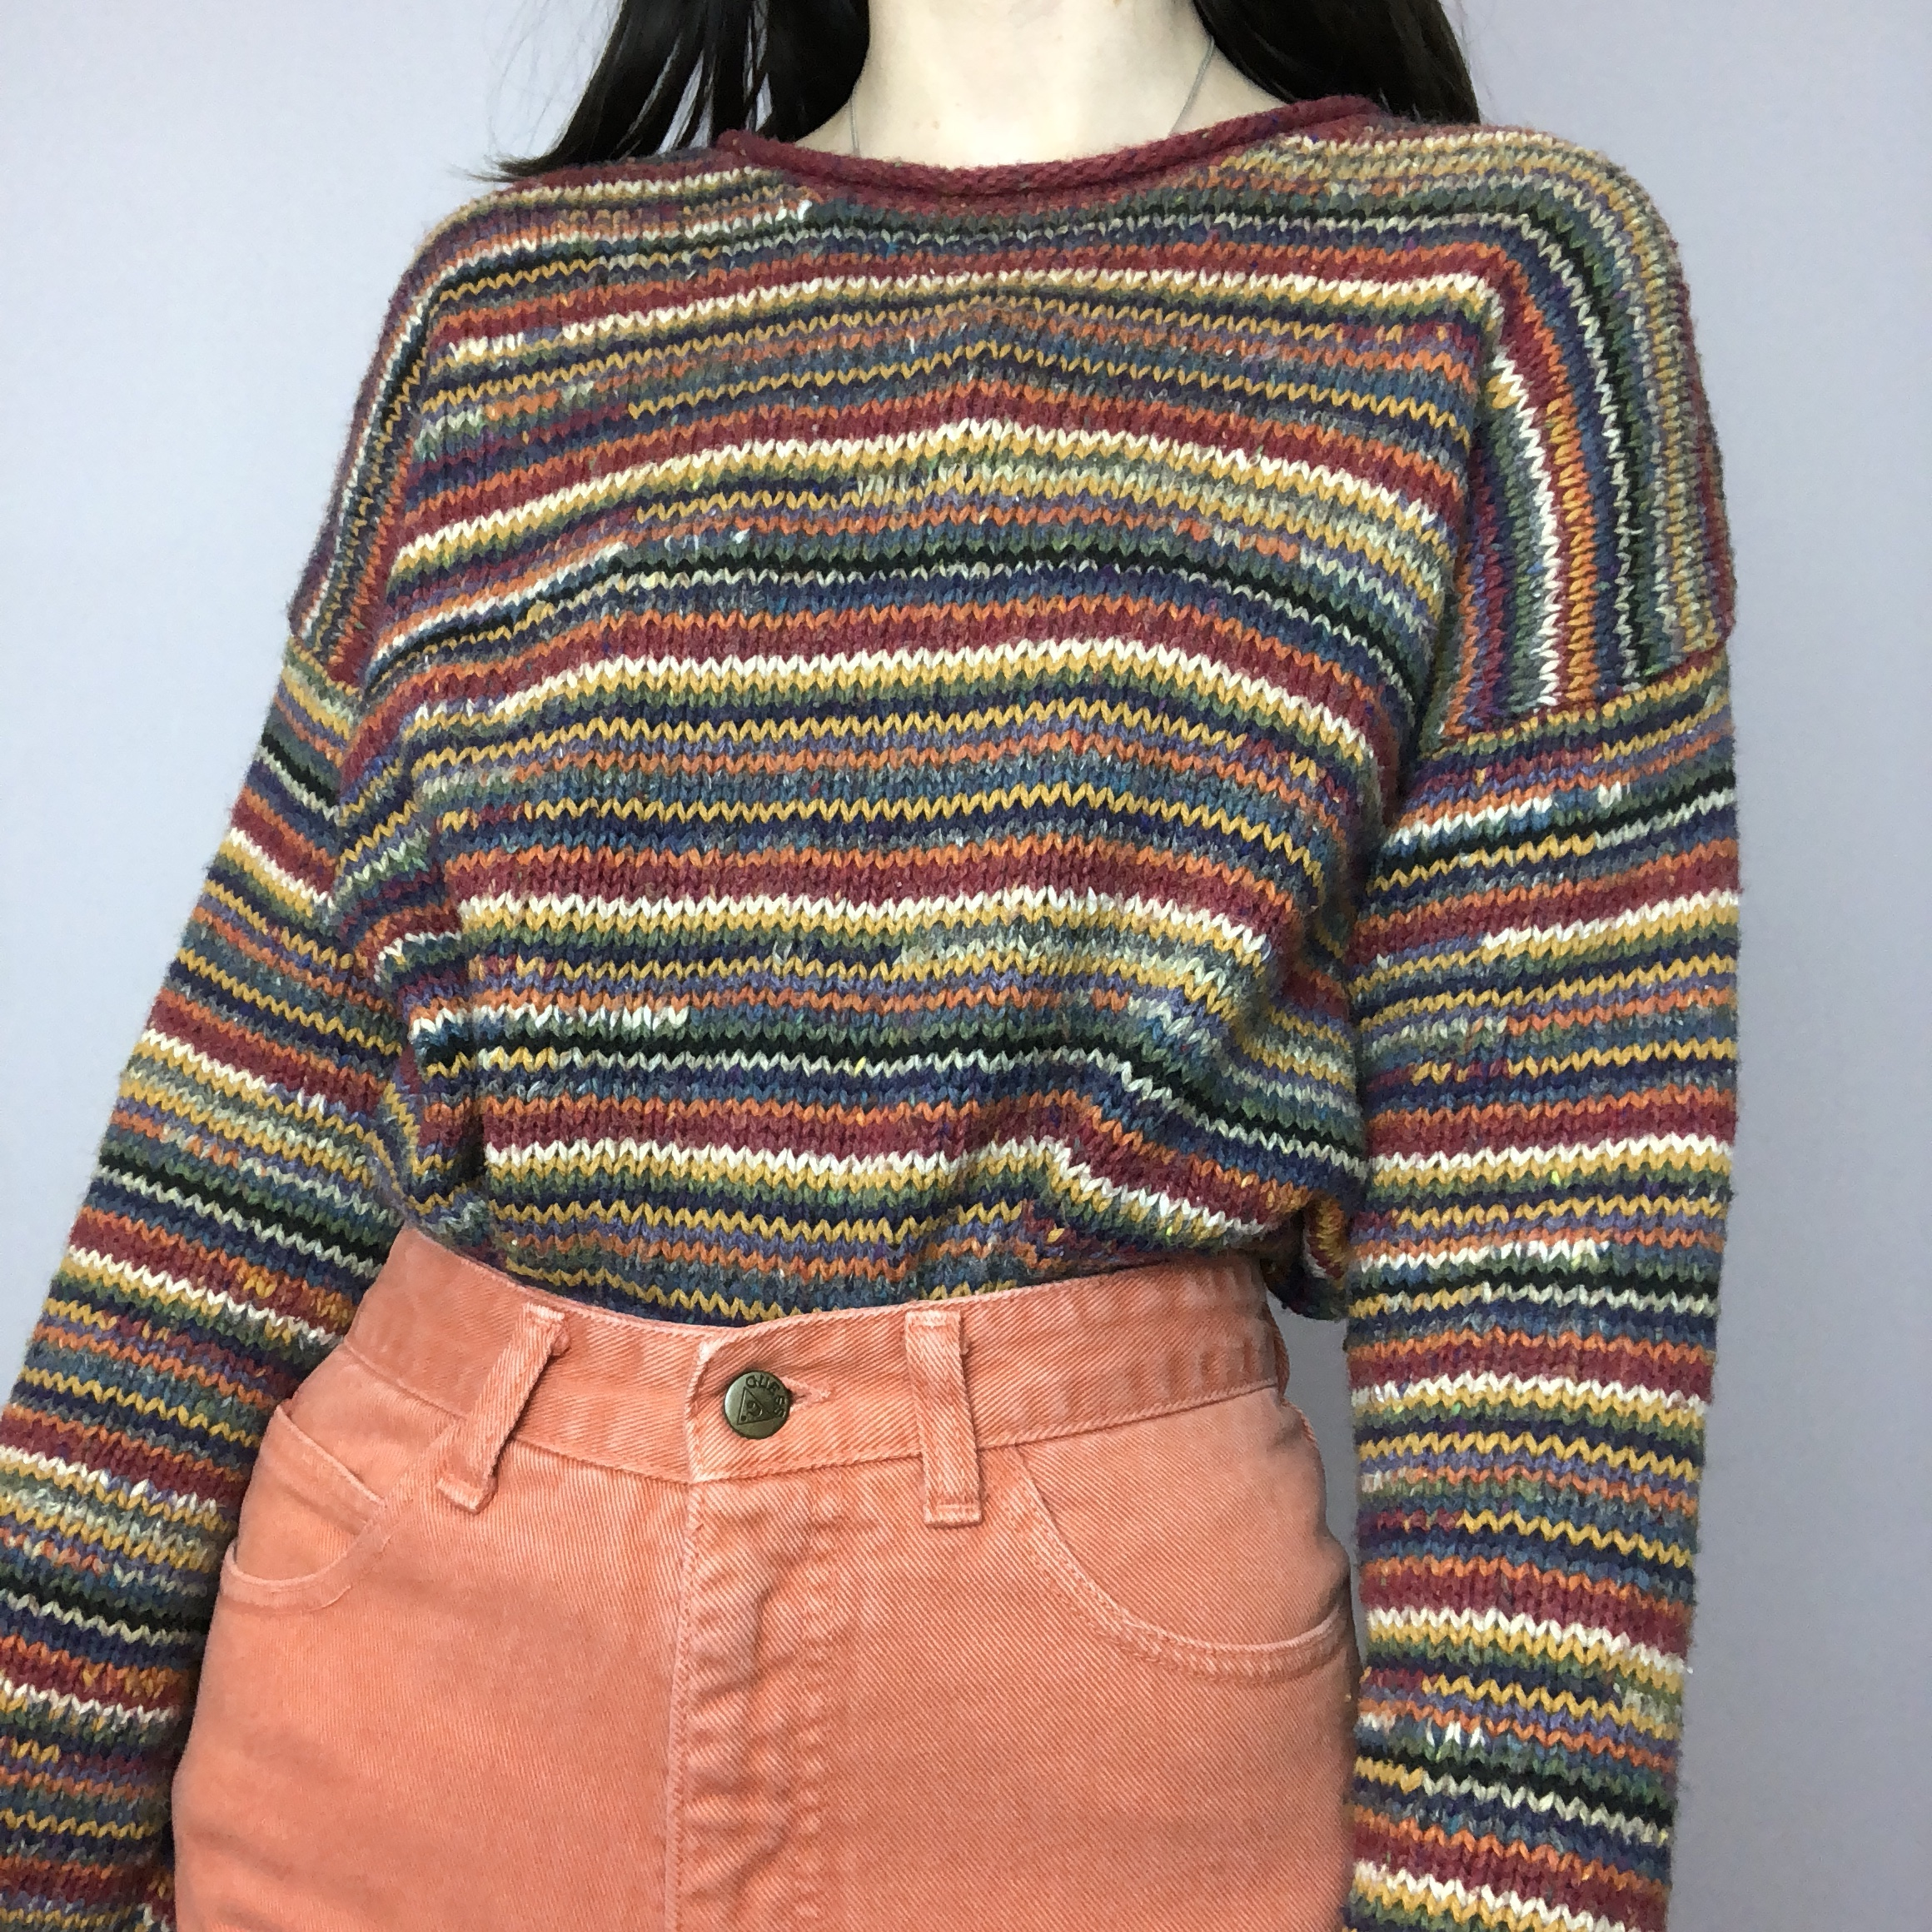 Vintage Rainbow Hand-Knitted Sweater